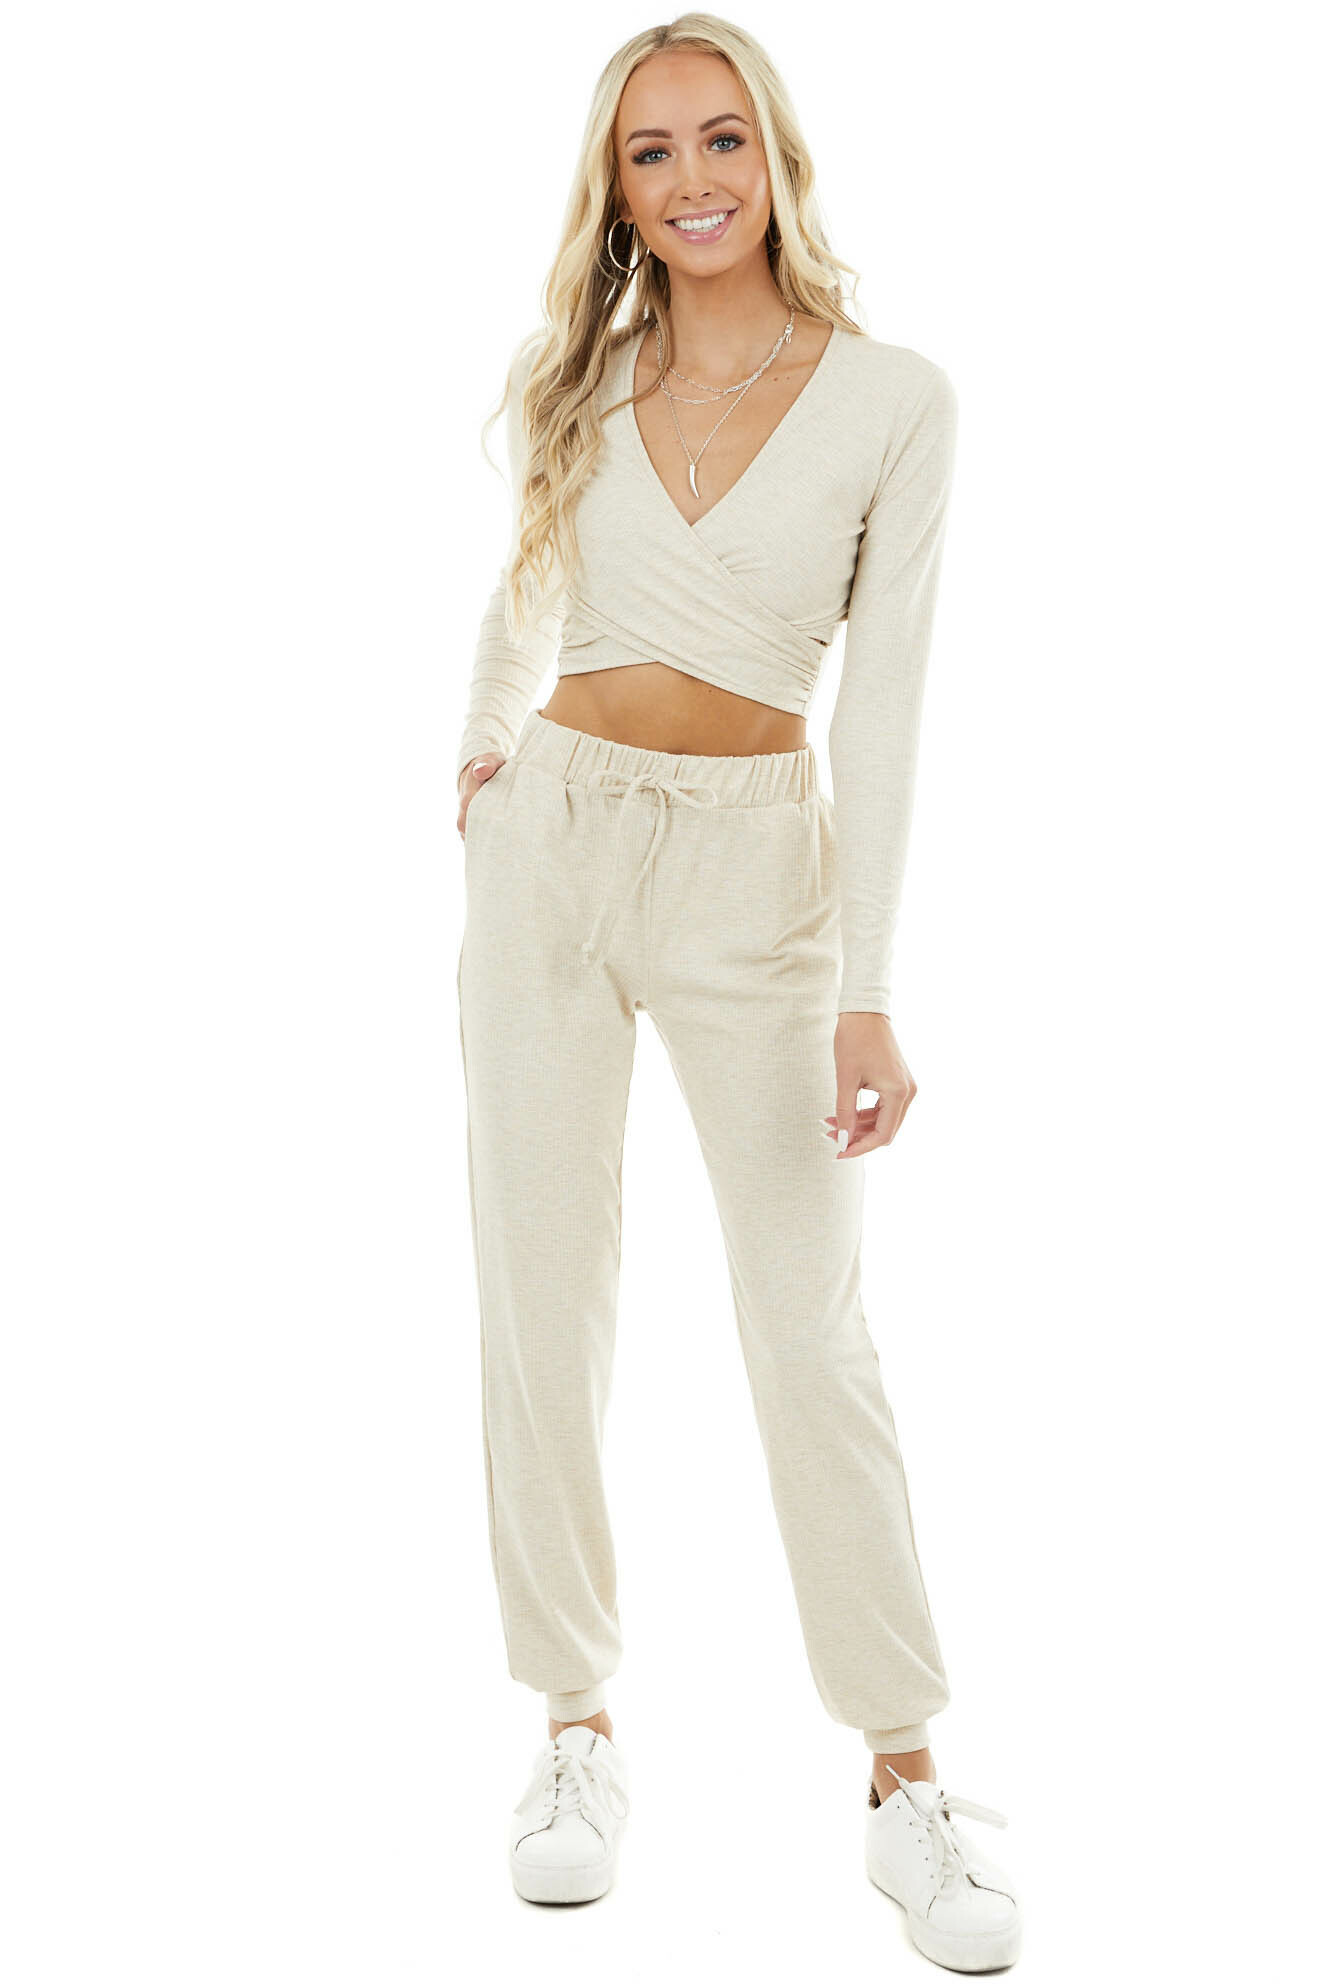 Oatmeal Ribbed Knit Lightweight Joggers with Elastic Waist